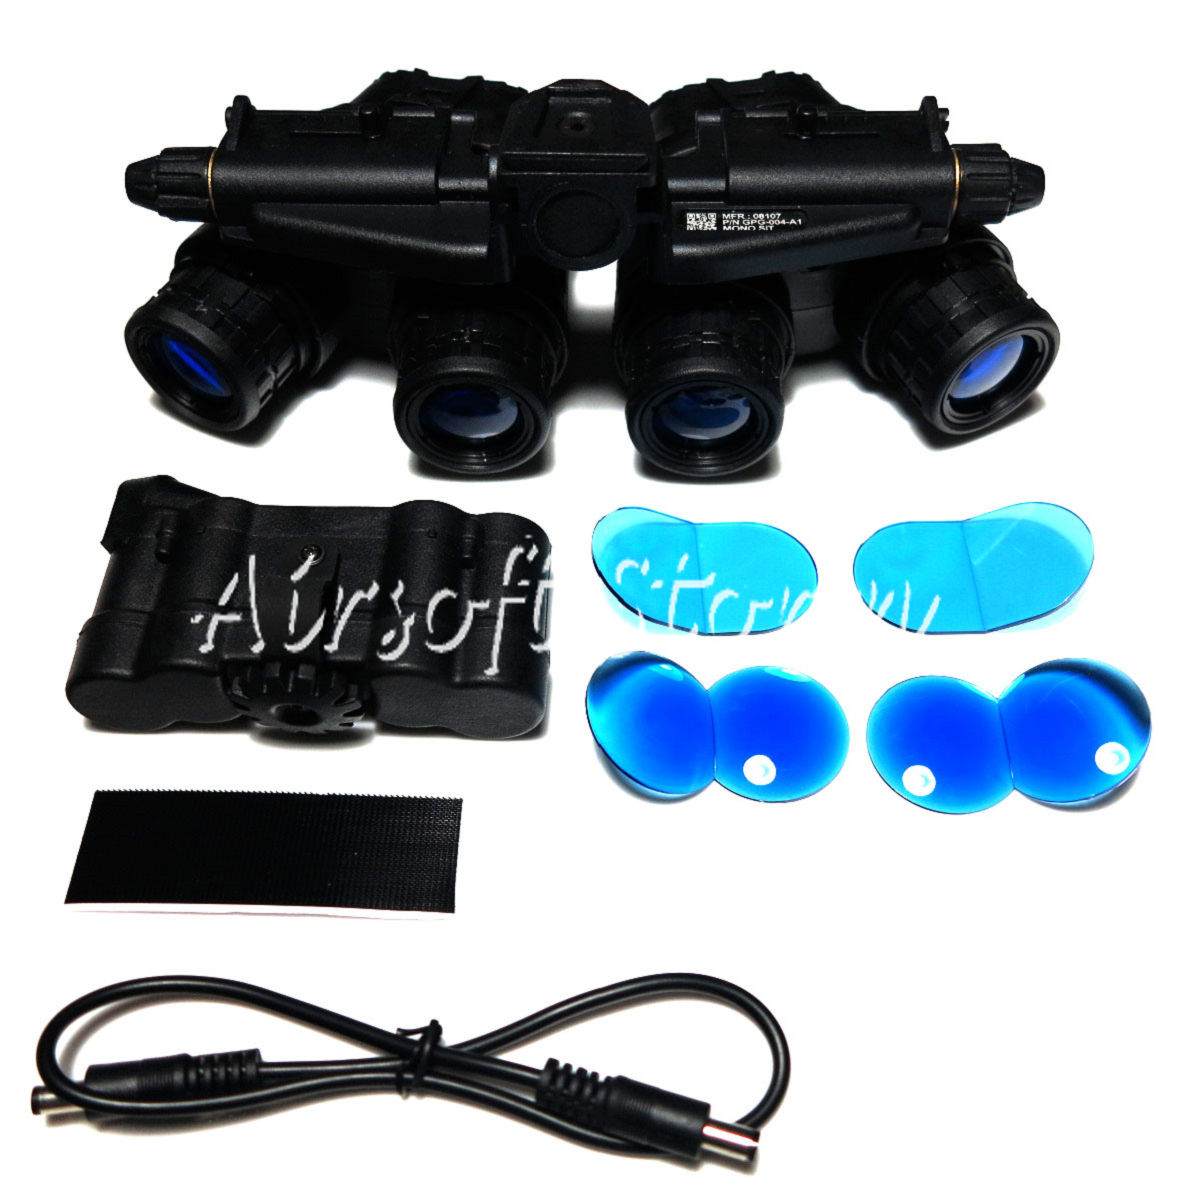 Airsoft Tactical Gear FMA GPNVG-18 Dummy Model Kit NVG Night Vision Goggle Black